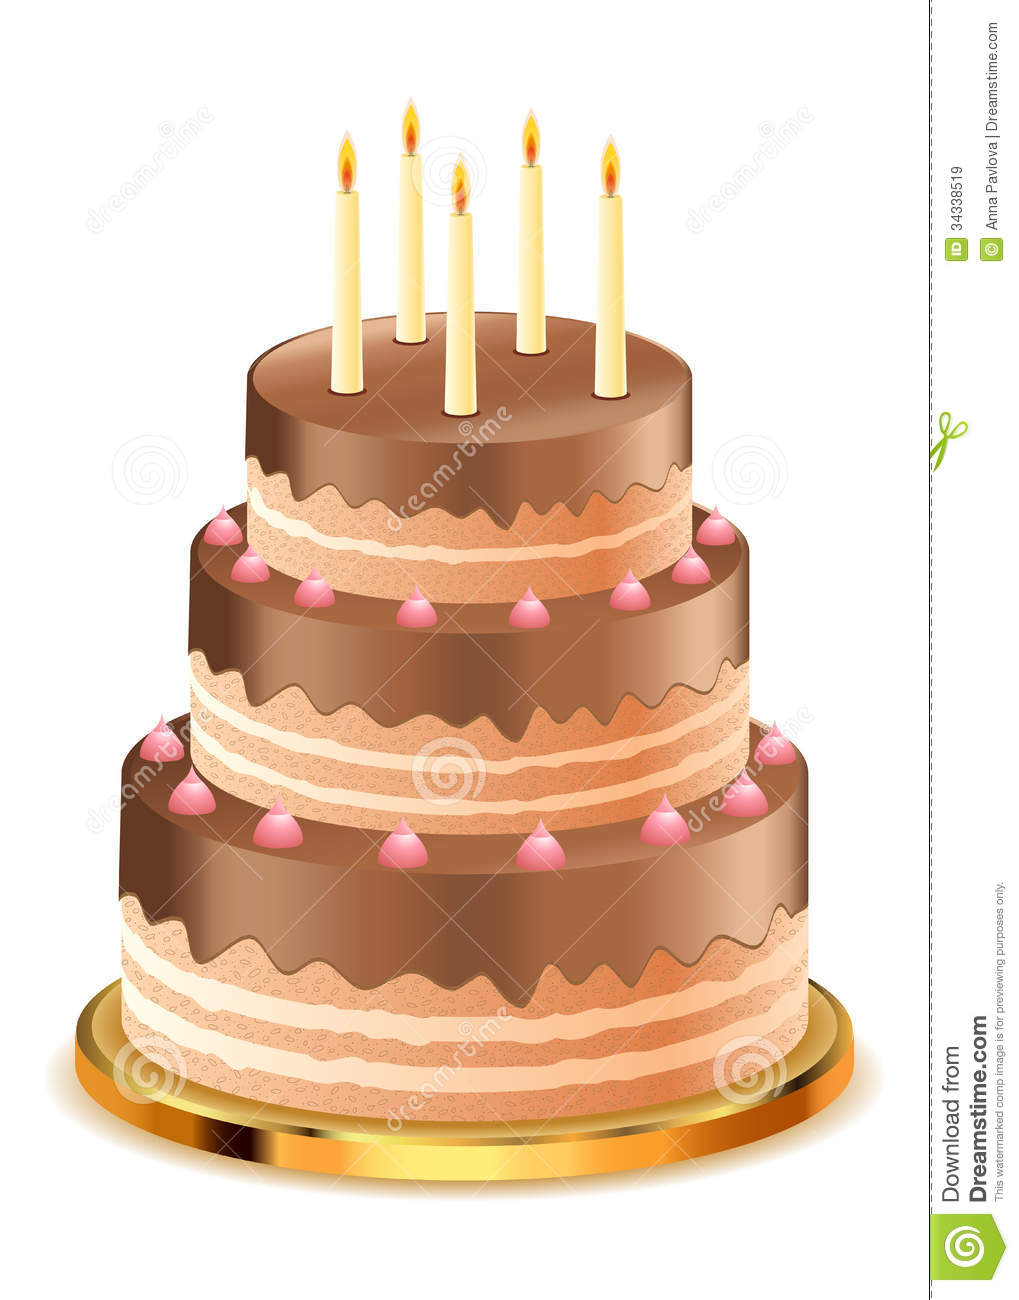 Chocolate Cake Images With Candles : Chocolate Cake With Candles Royalty Free Stock Images ...